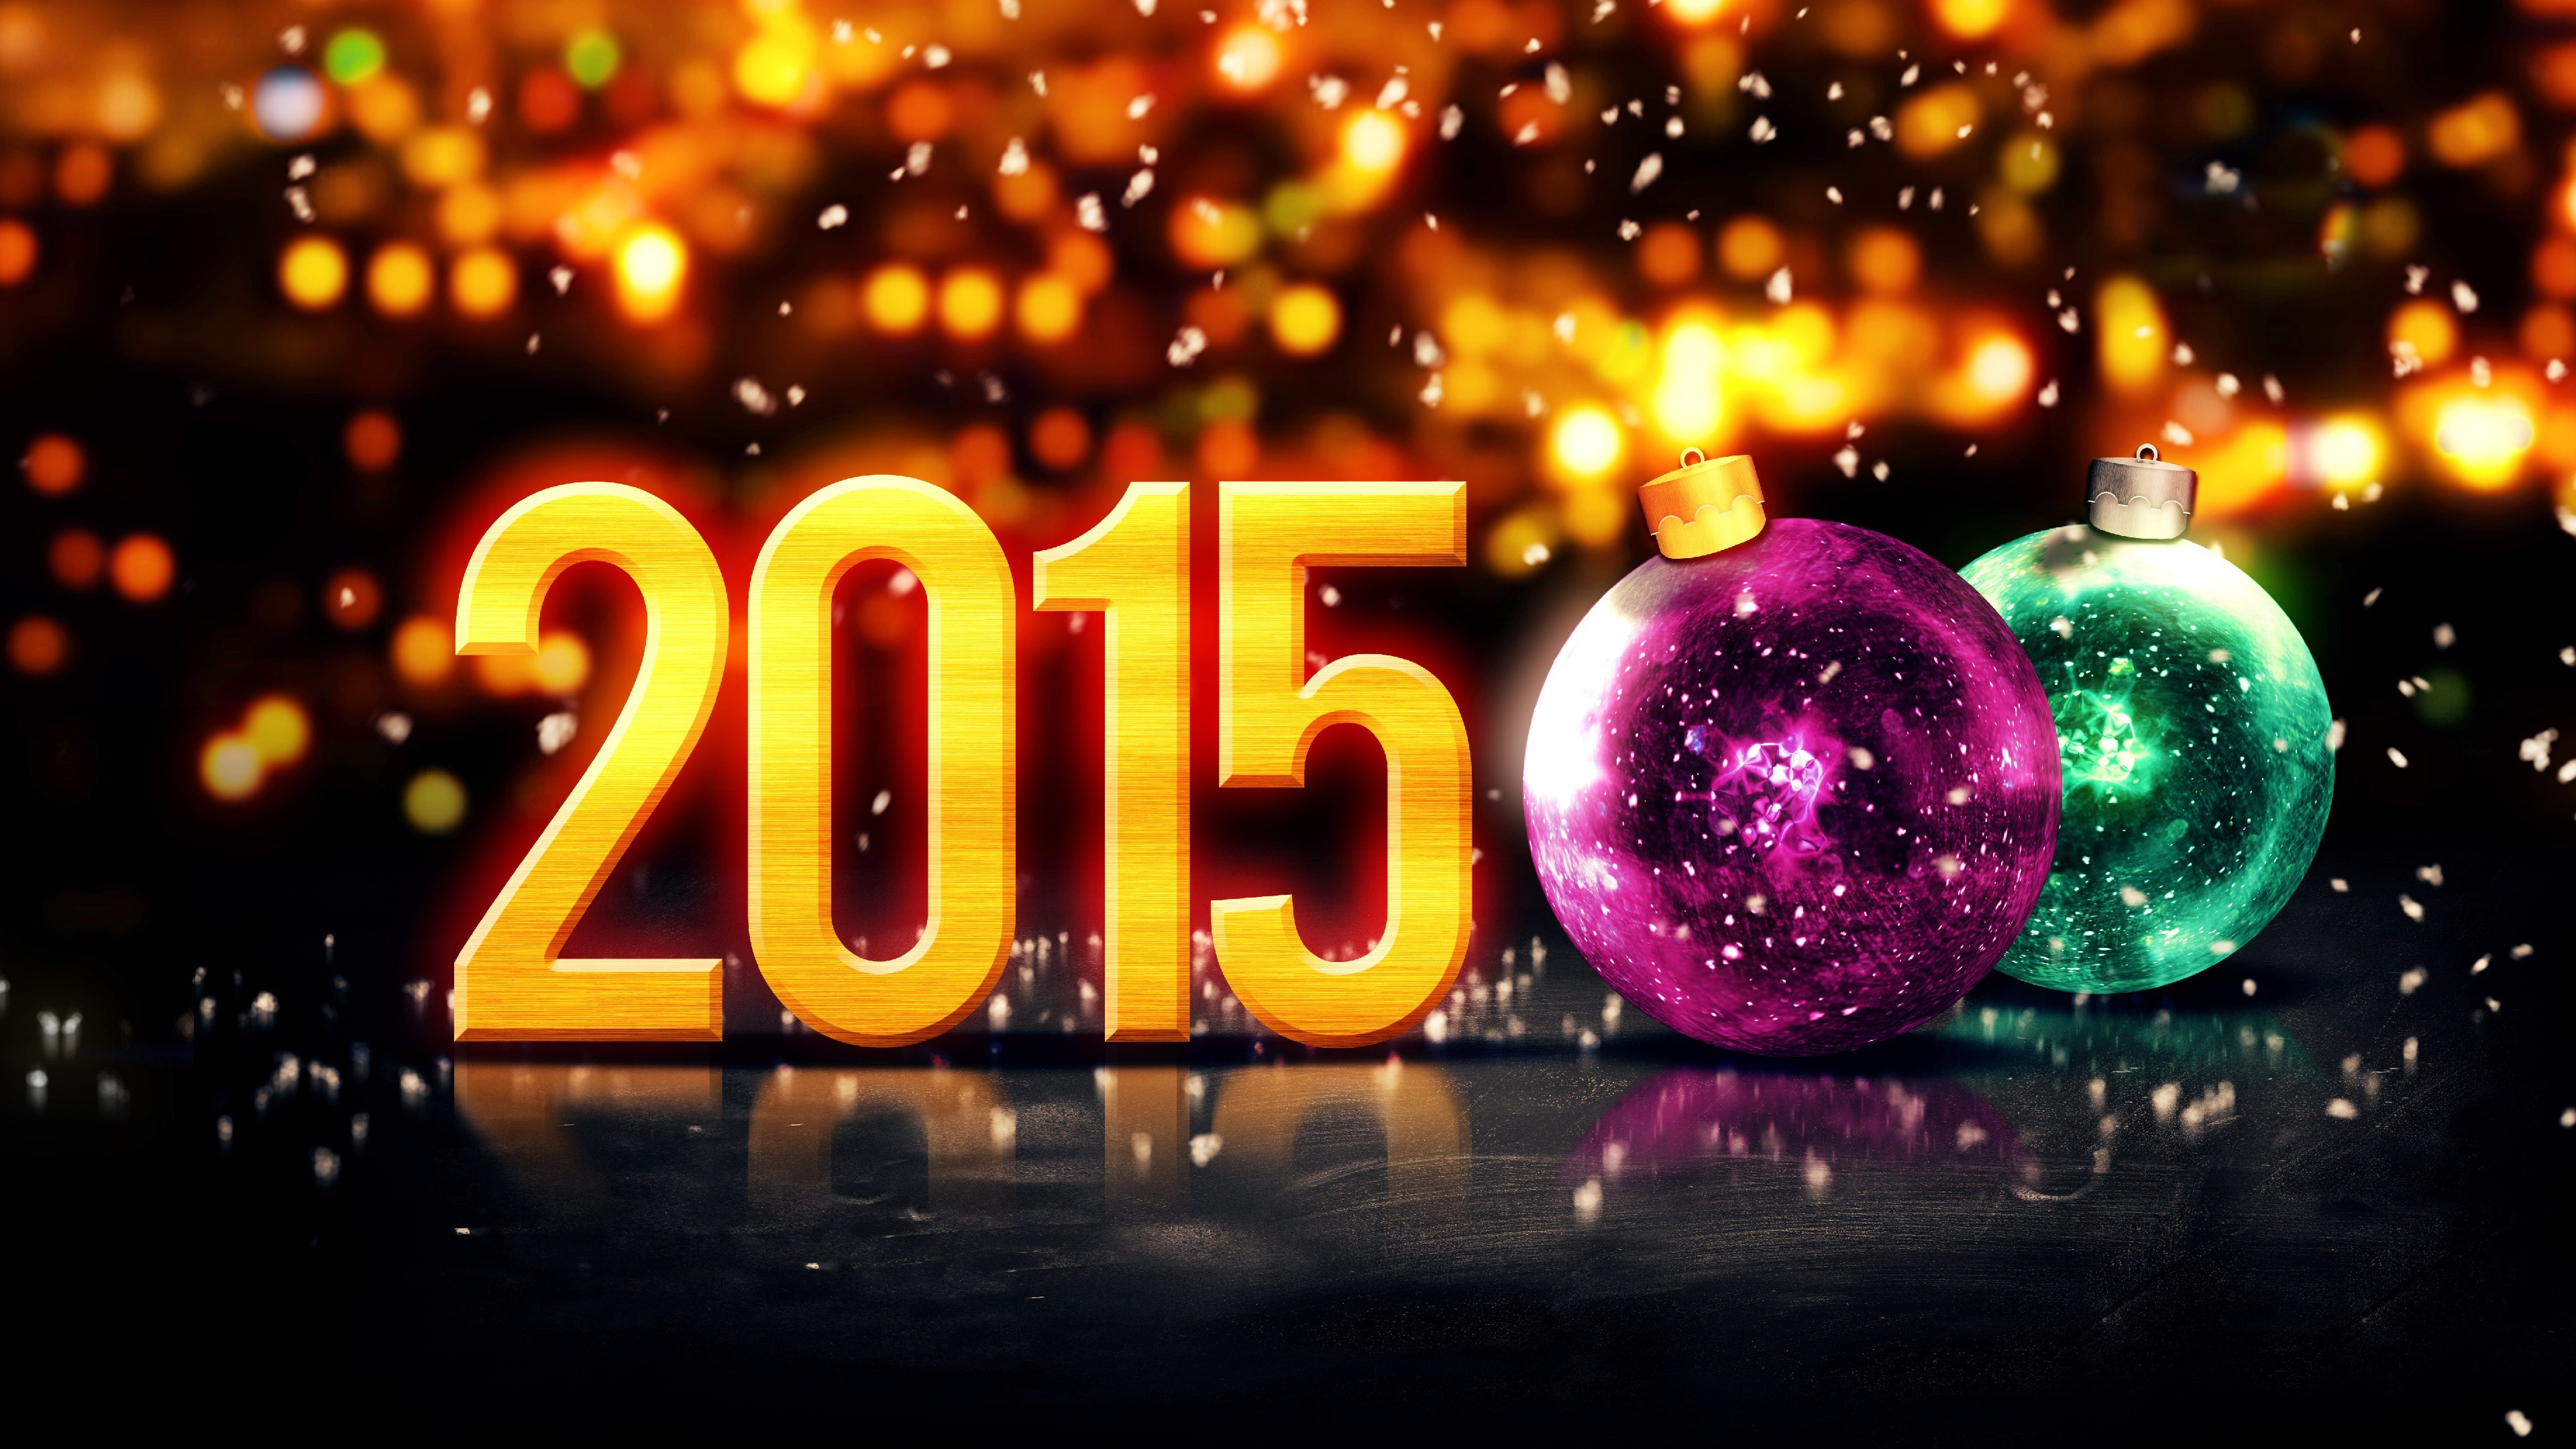 Happy New Year 2015 Ultra HD wallpaper UHD WallpapersNet 3840x2160